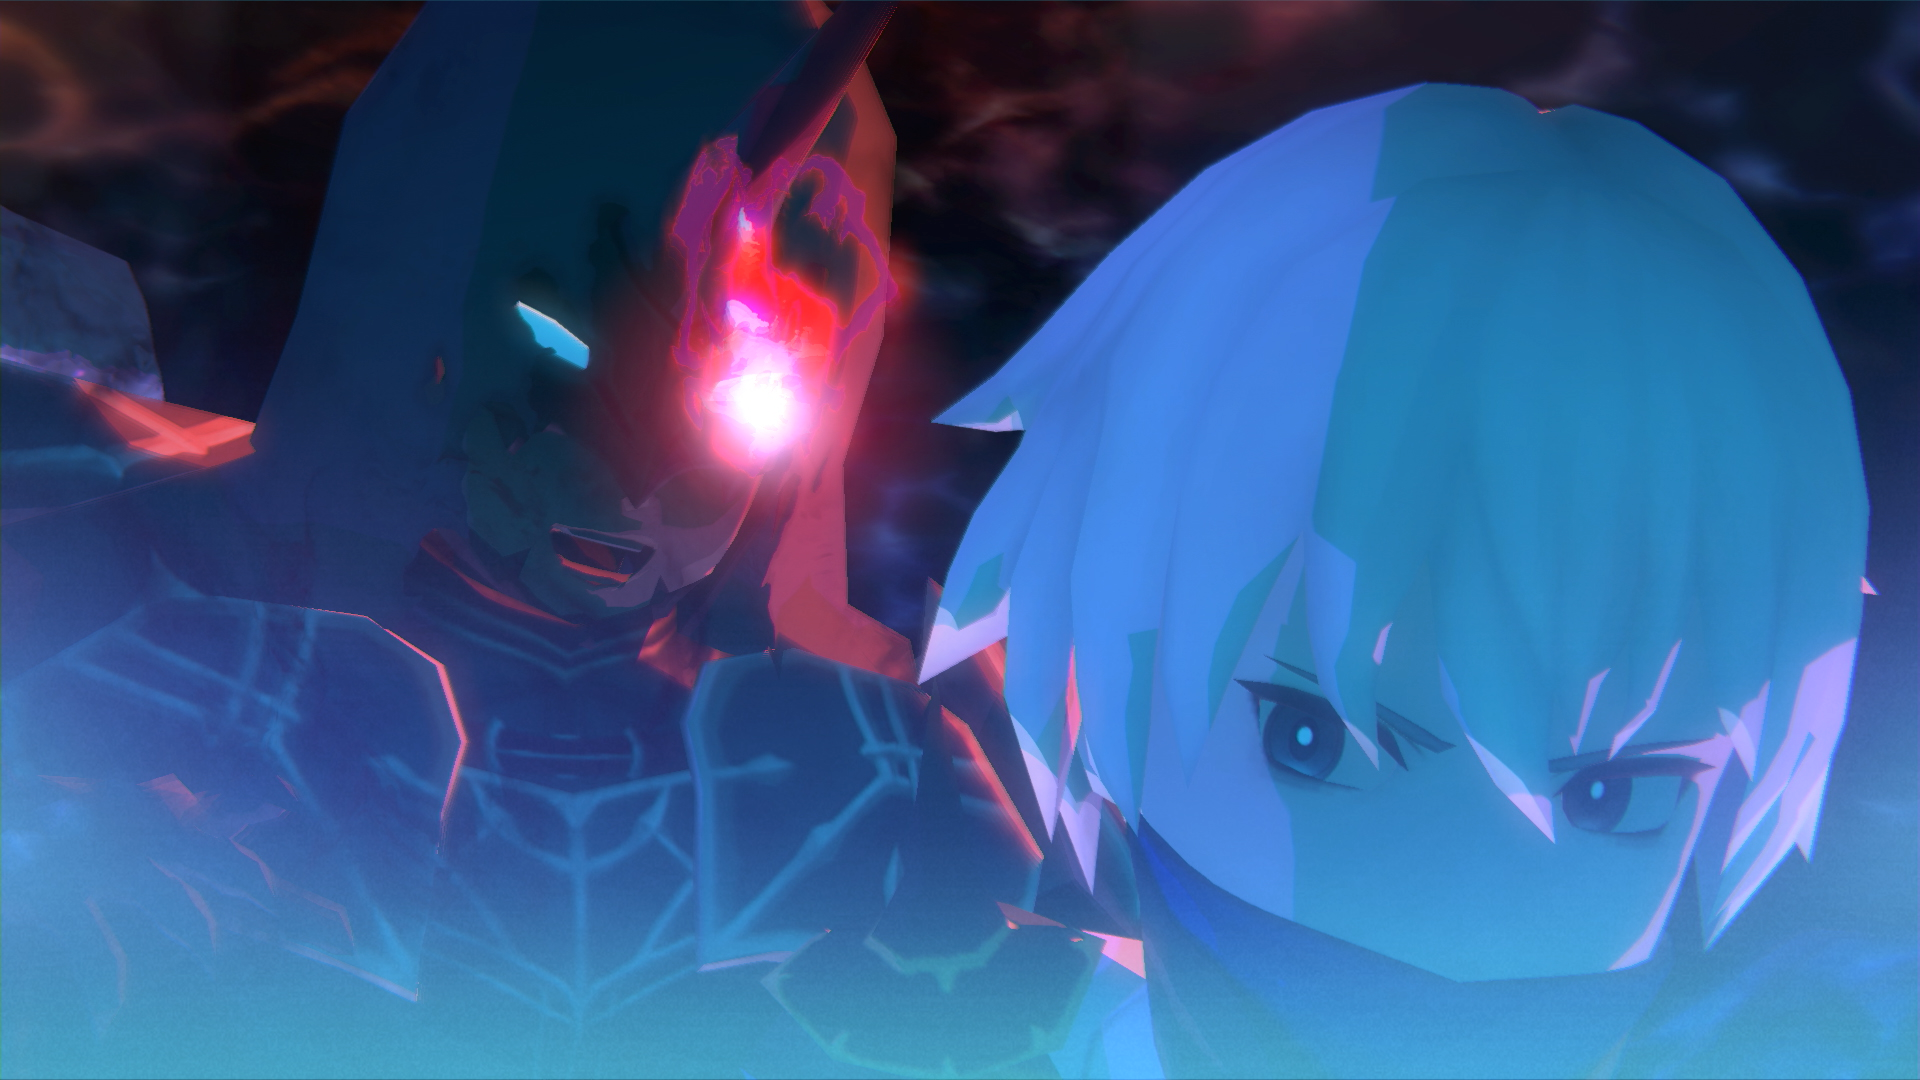 Release Your Inner Daemons with Free Oninaki Demo, Available Now on PS4